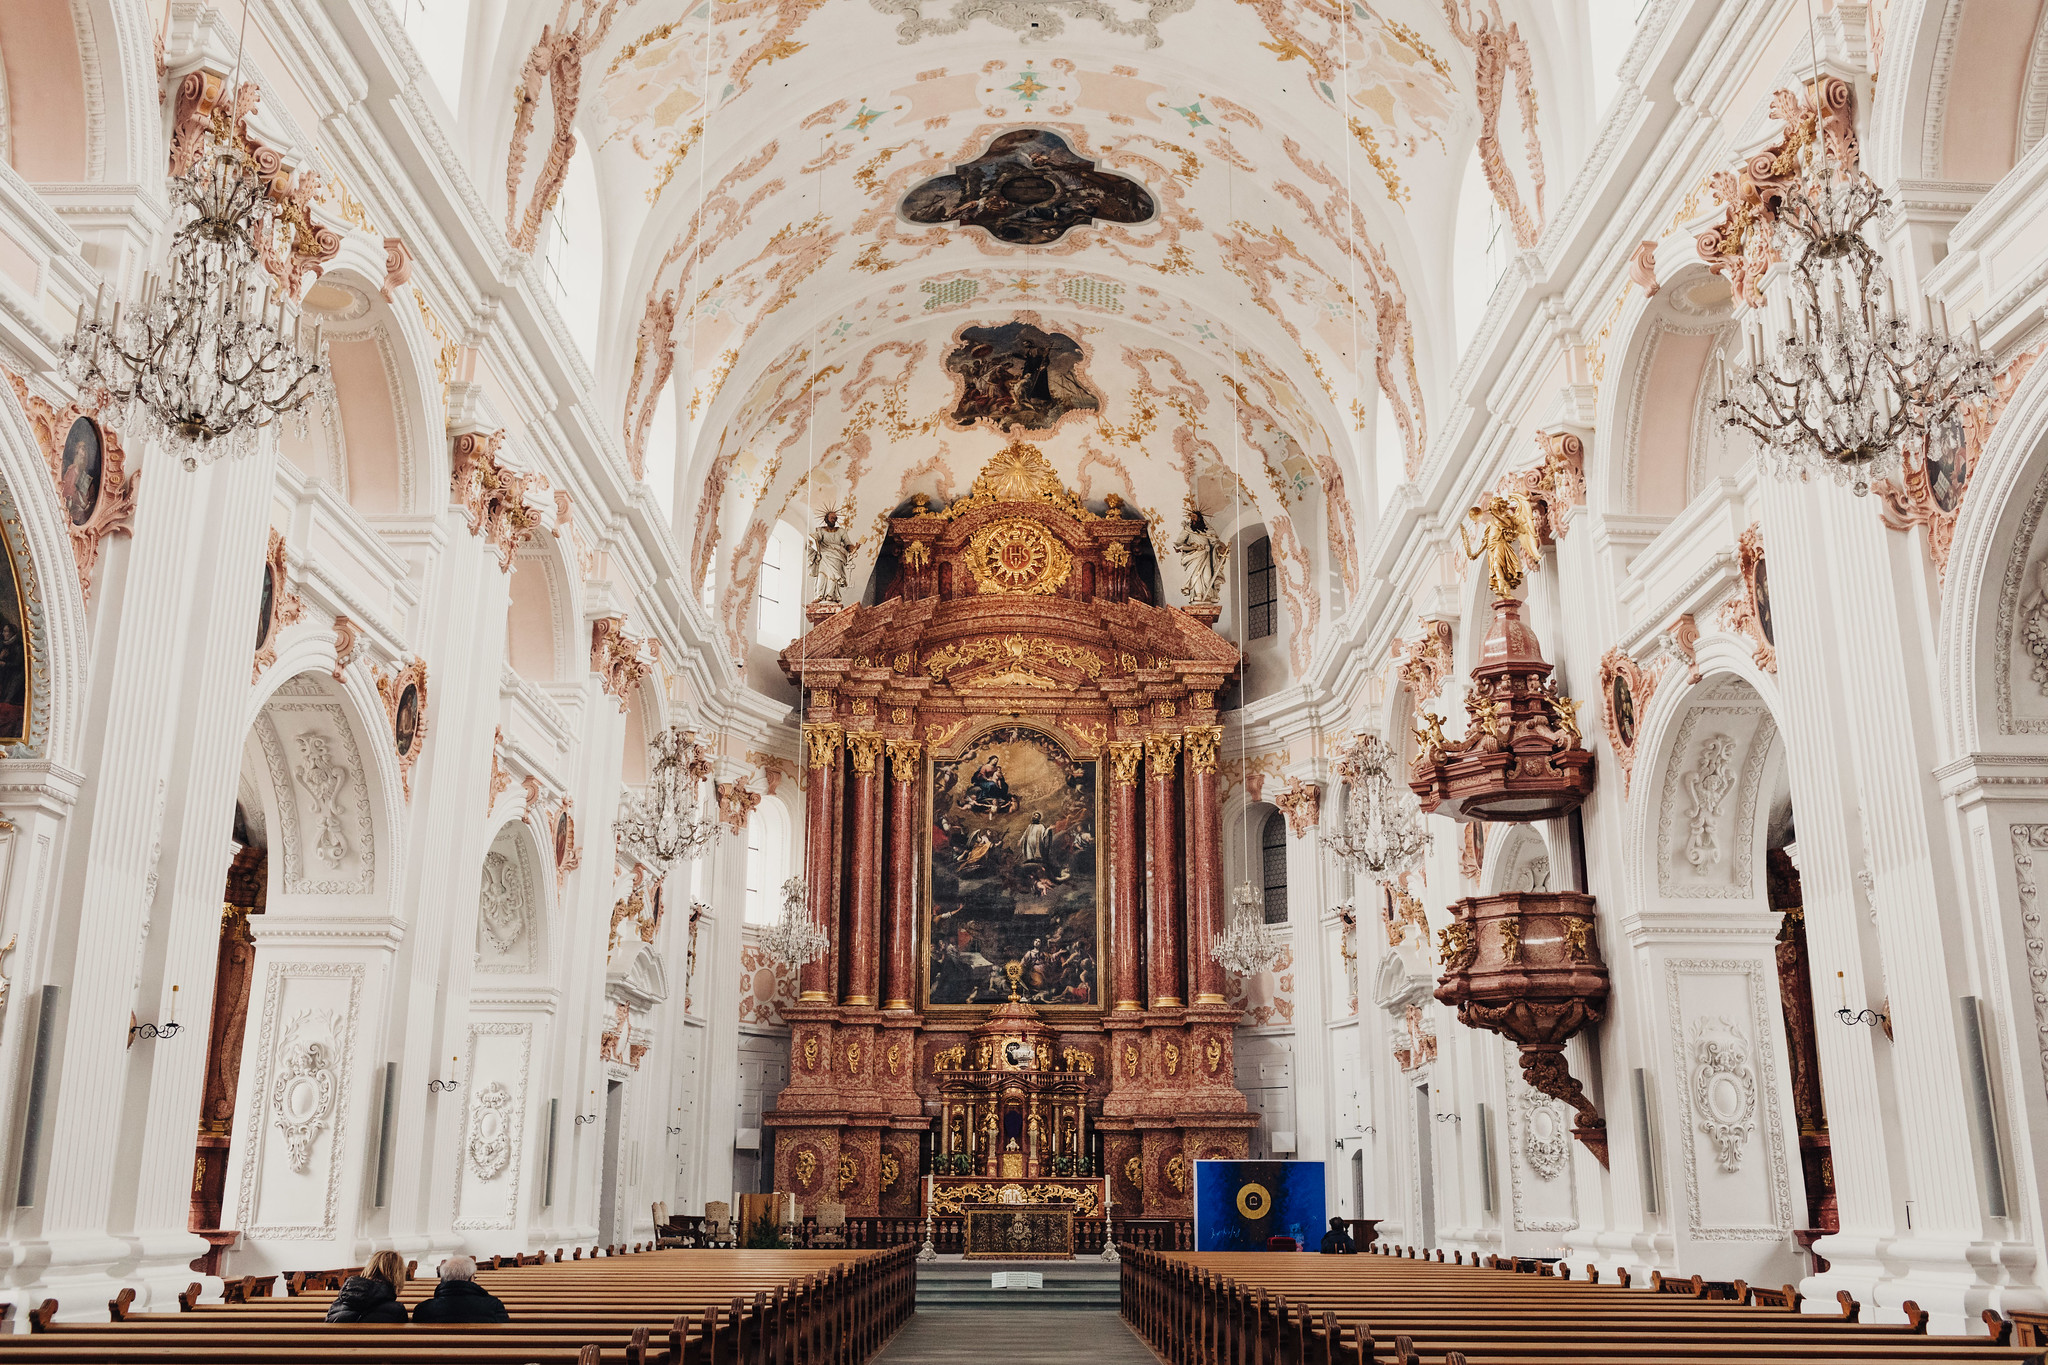 Inside the Jesuit Church